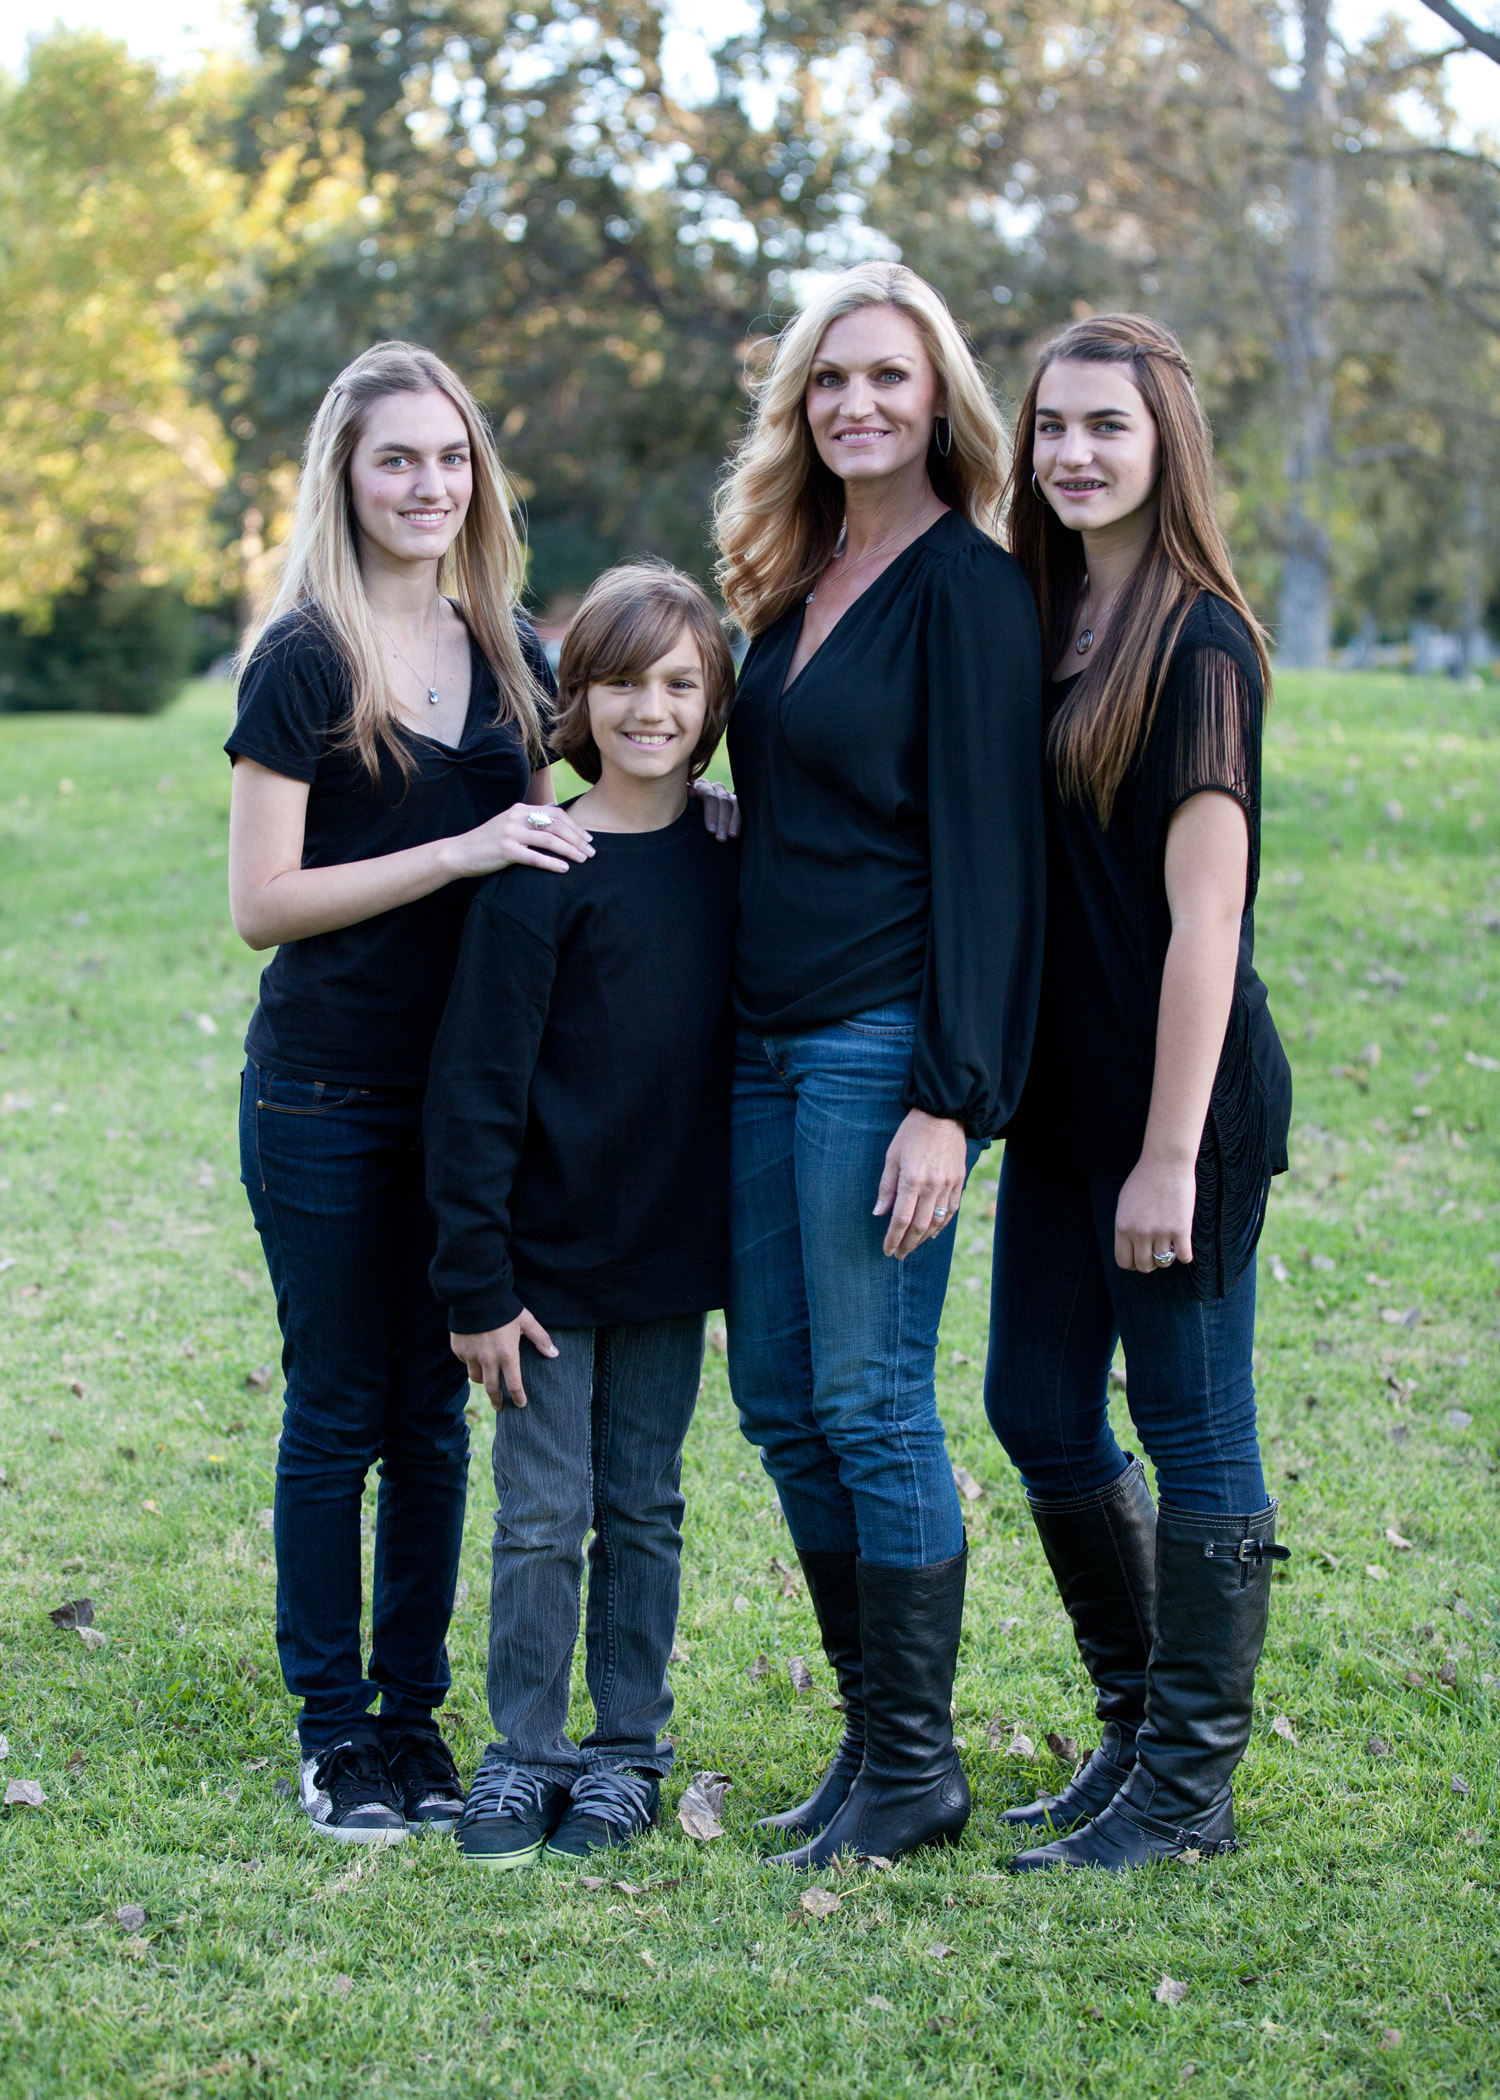 family portrait mother two daughters one son black shirts blue jeans park grass backdrop